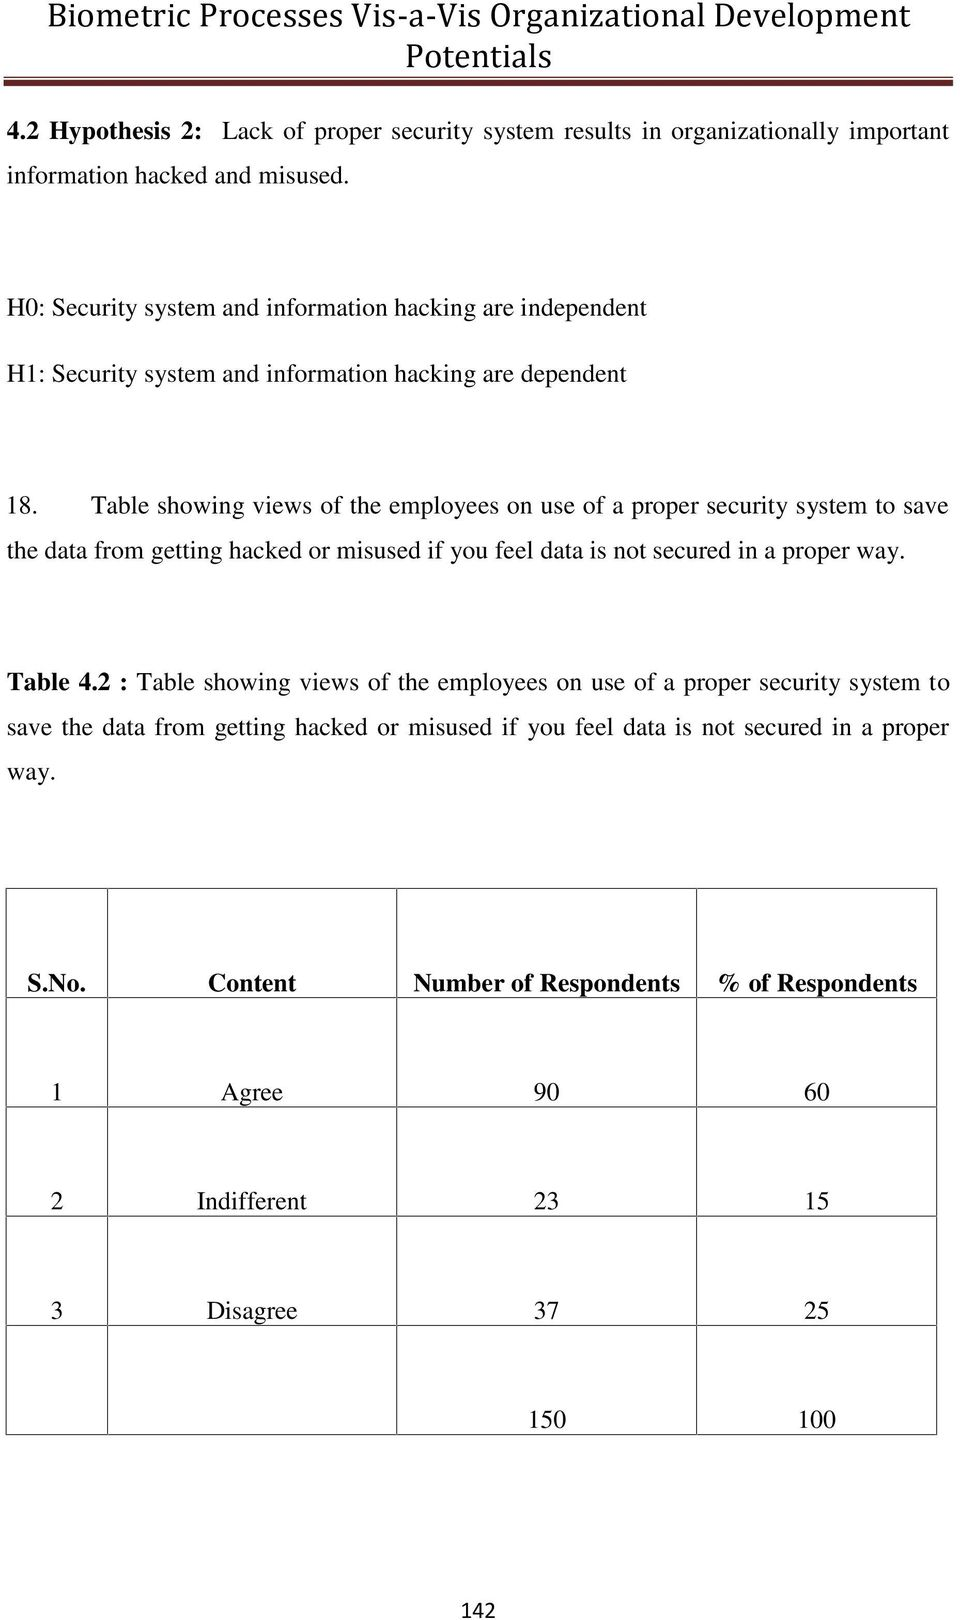 Table showing views of the employees on use of a proper security system to save the data from getting hacked or misused if you feel data is not secured in a proper way. Table 4.